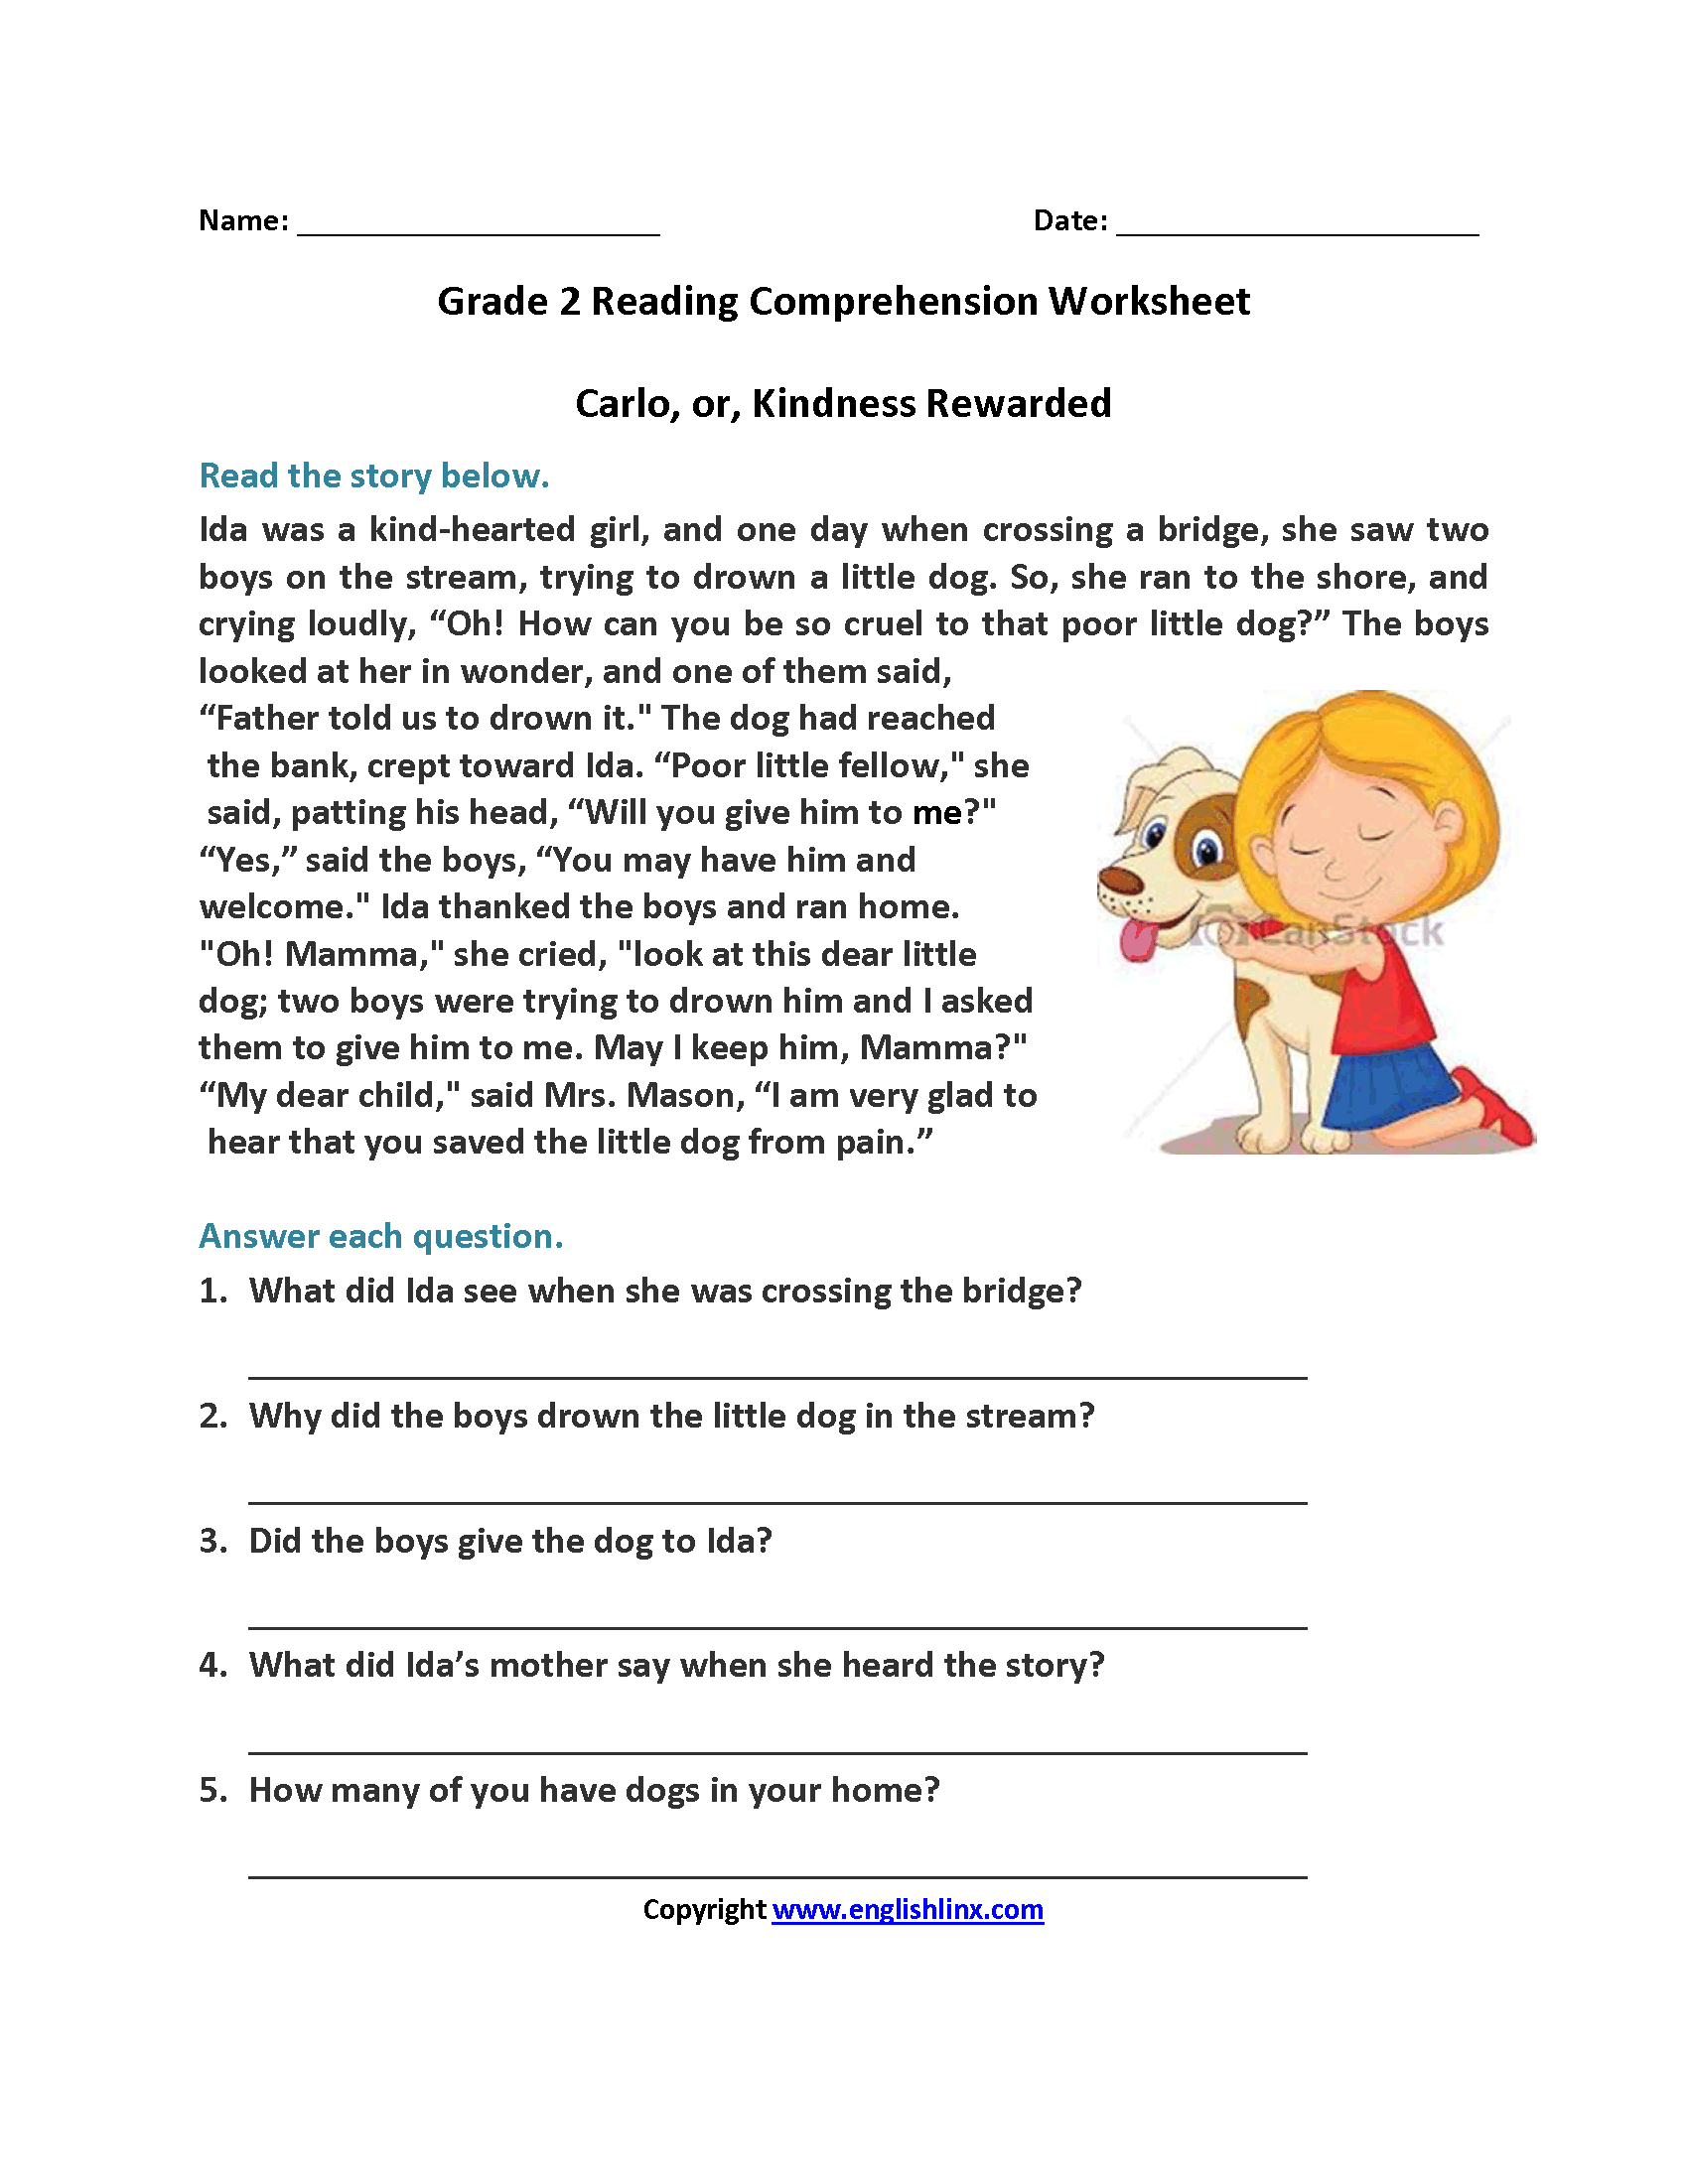 Carlo Or Kindness Rewarded Second Grade Reading Worksheets